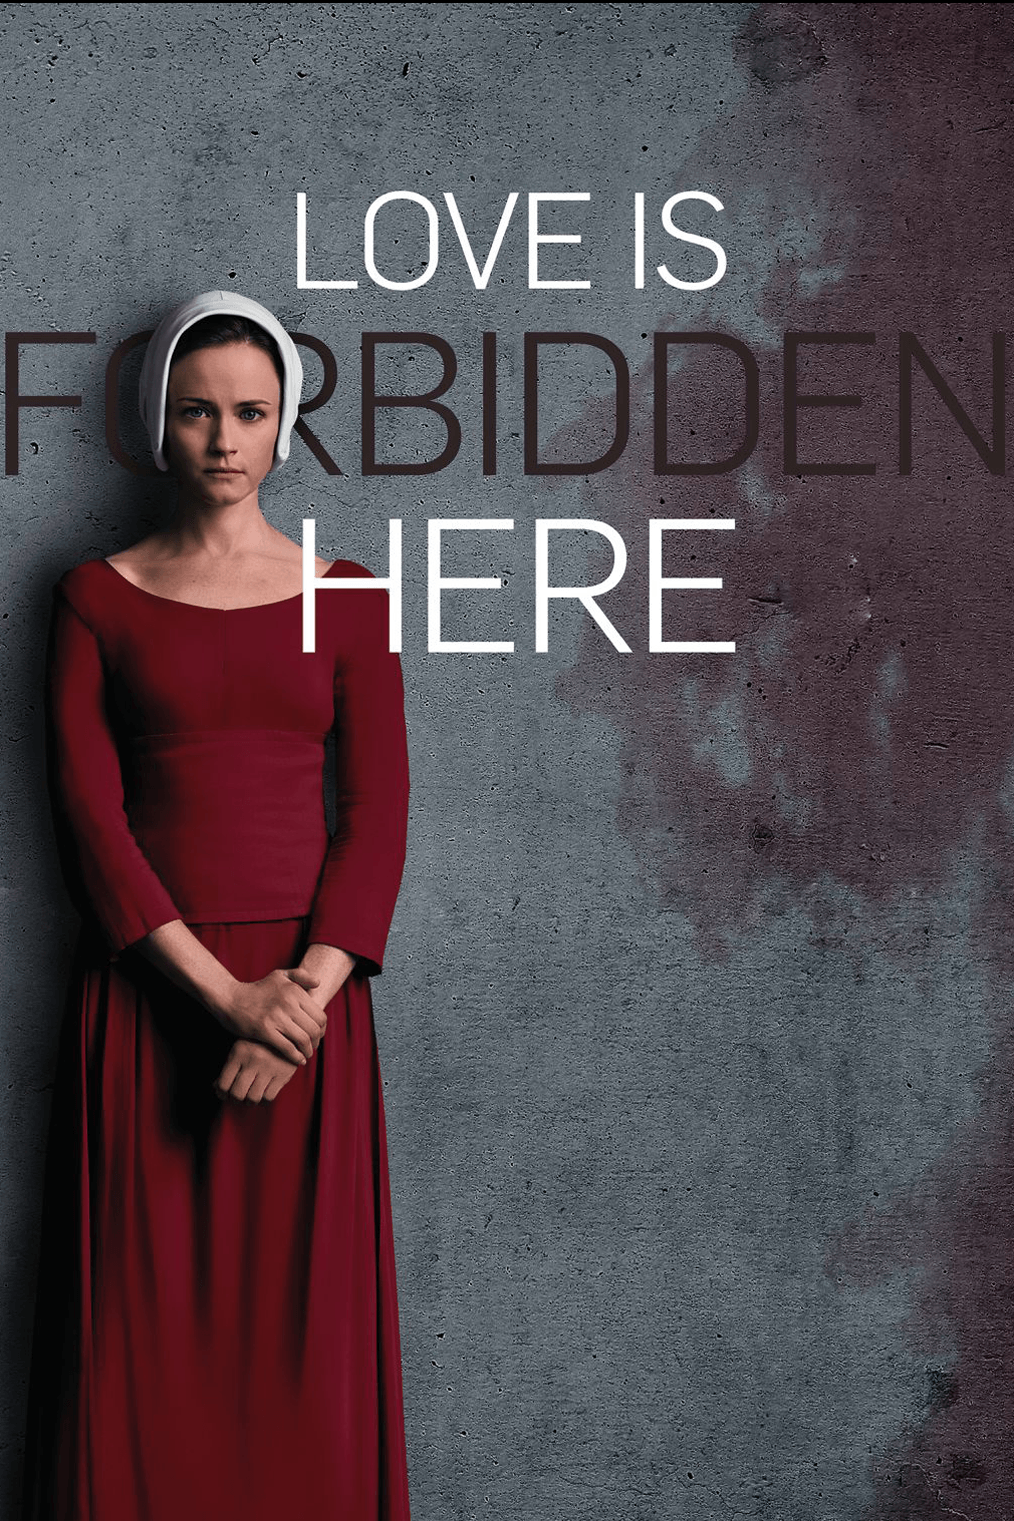 Ofglen | The Handmaid's Tale Wiki | FANDOM powered by Wikia